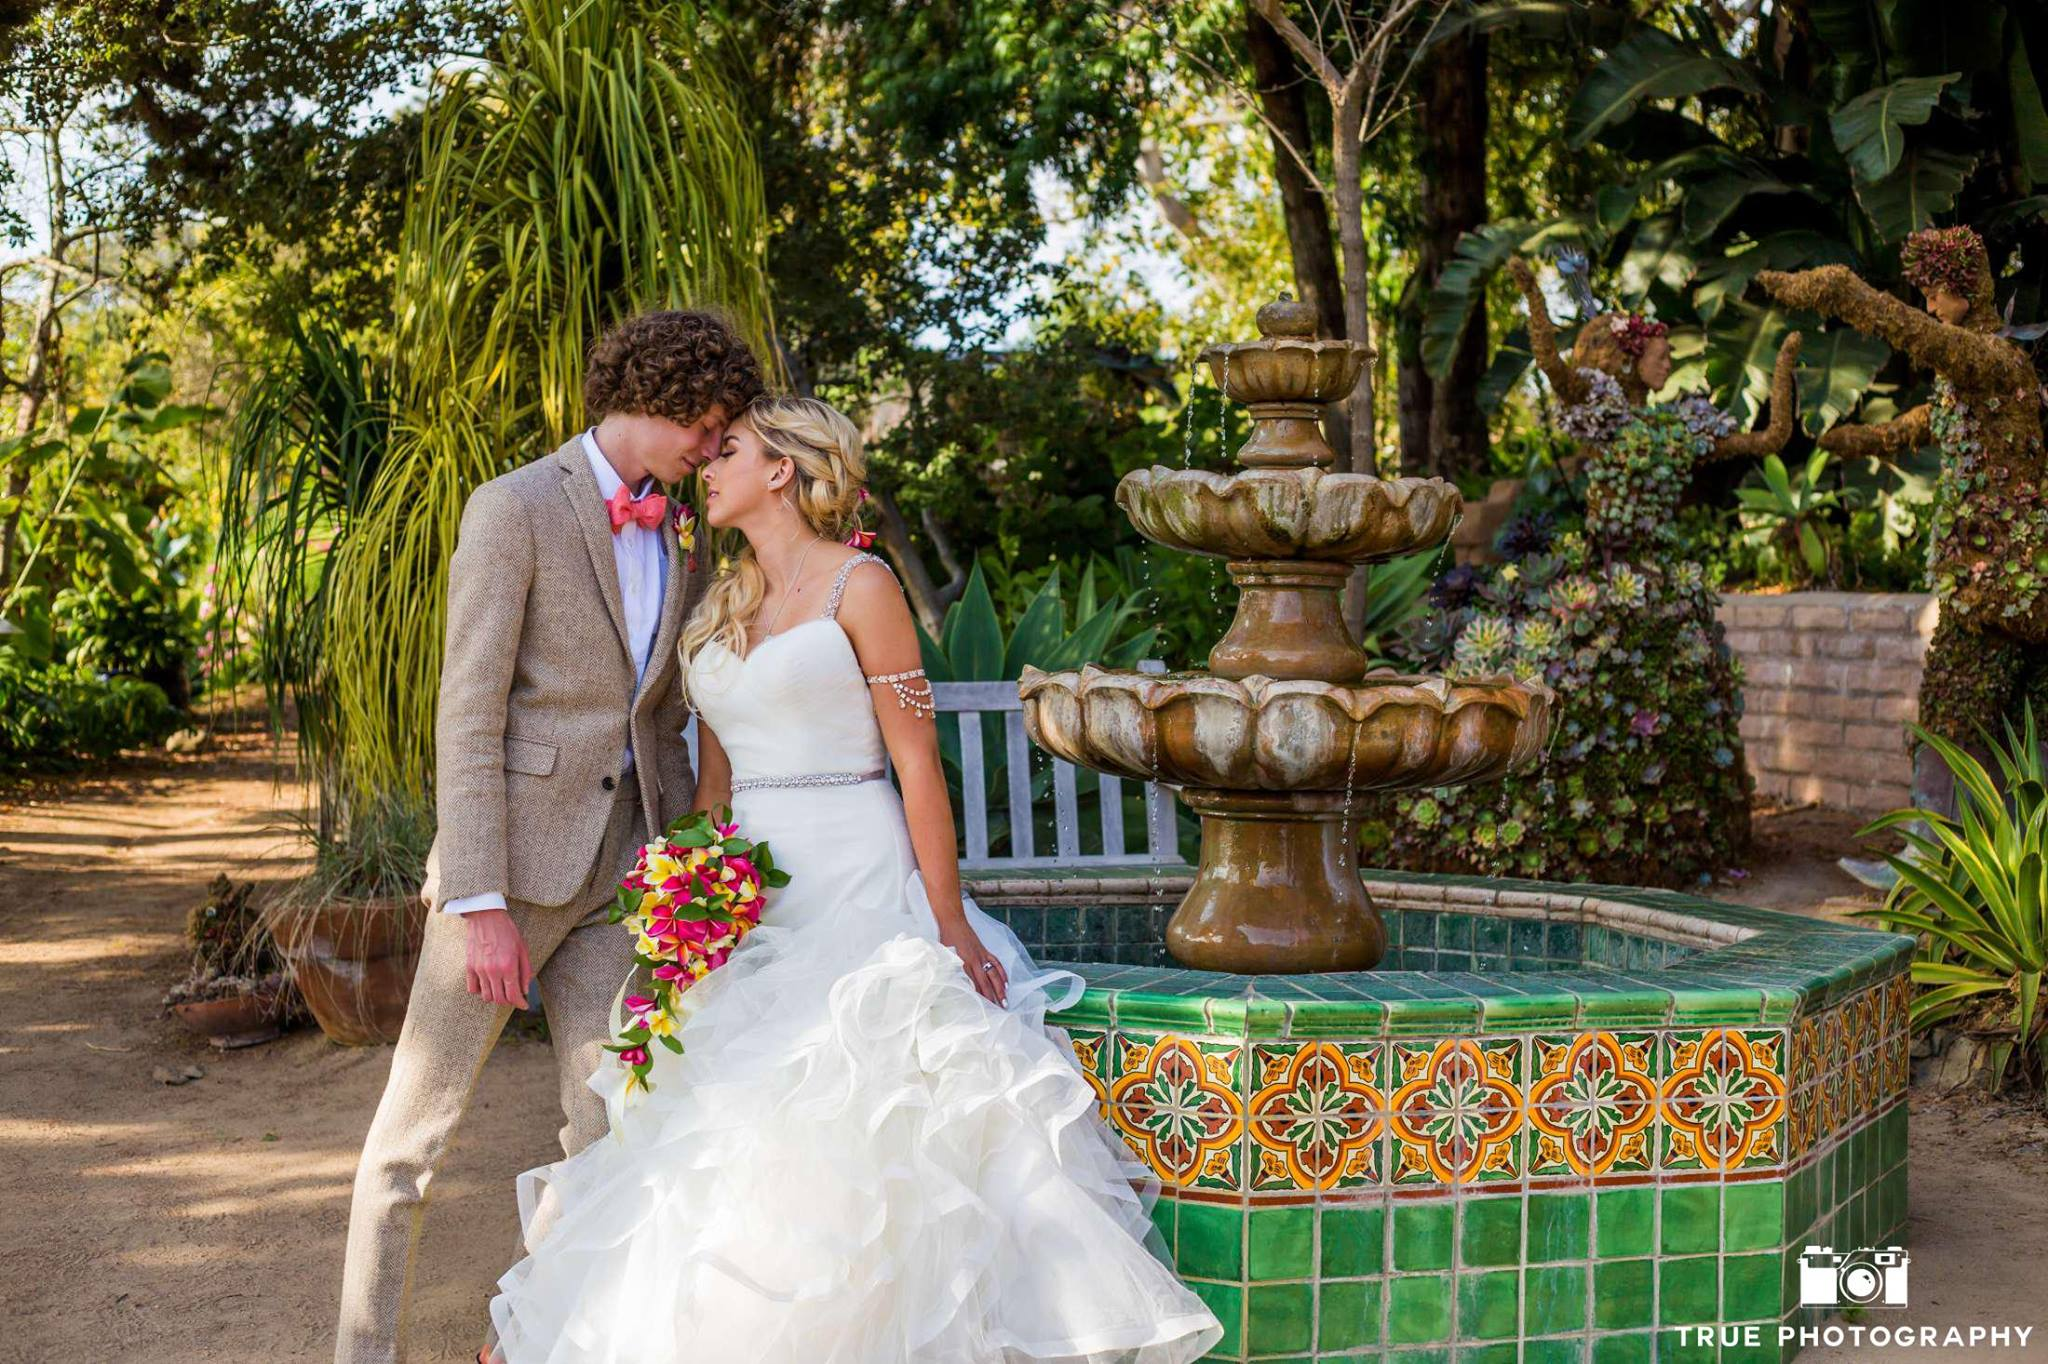 Michelle and Cameron pose by a fountain after their wedding ceremony at the San Diego Botanic Garden.